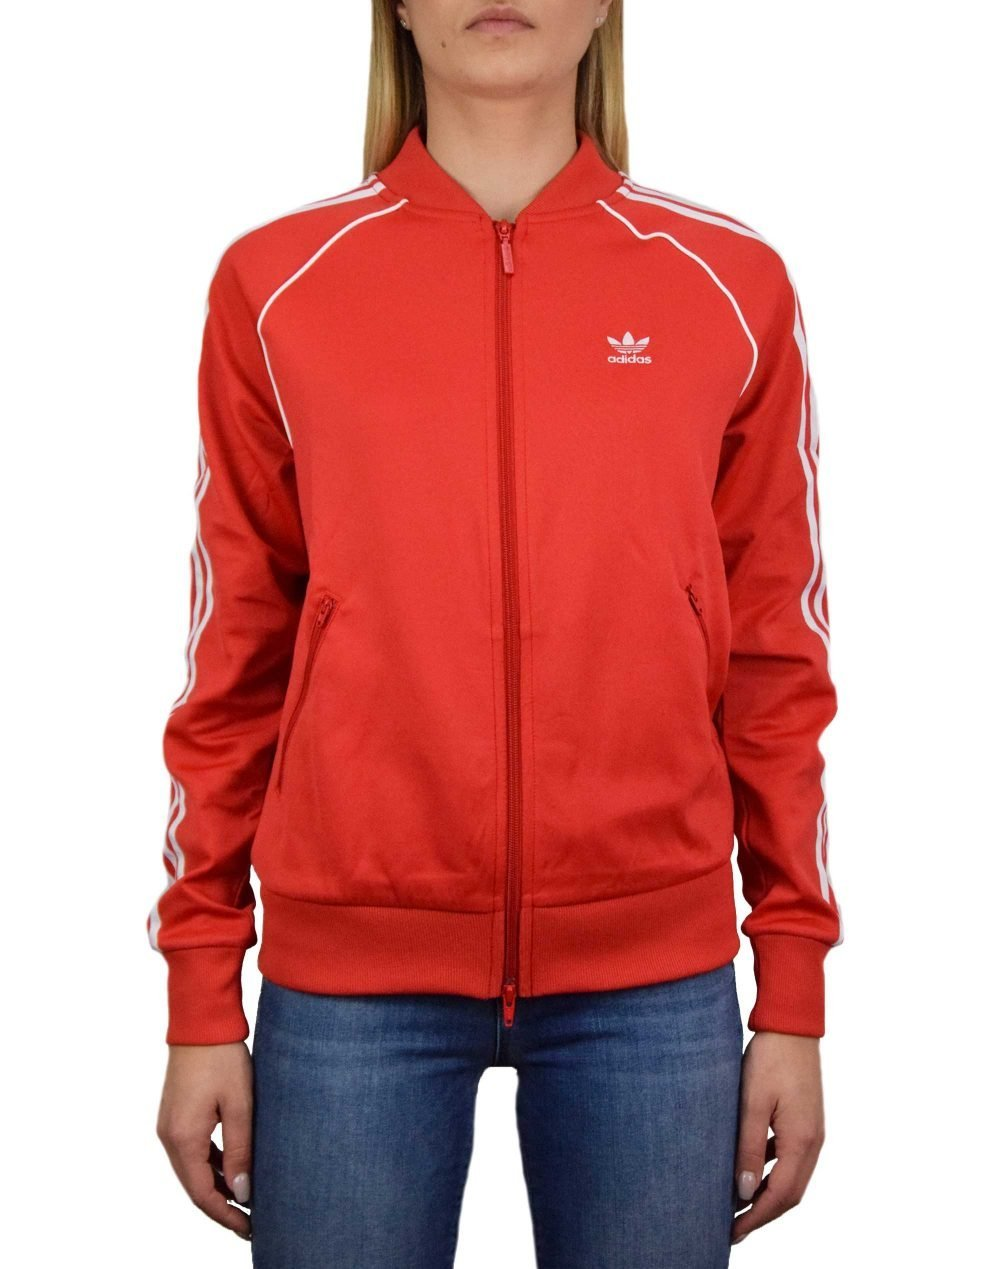 Adidas SS Track Top (FM3313) Red/White